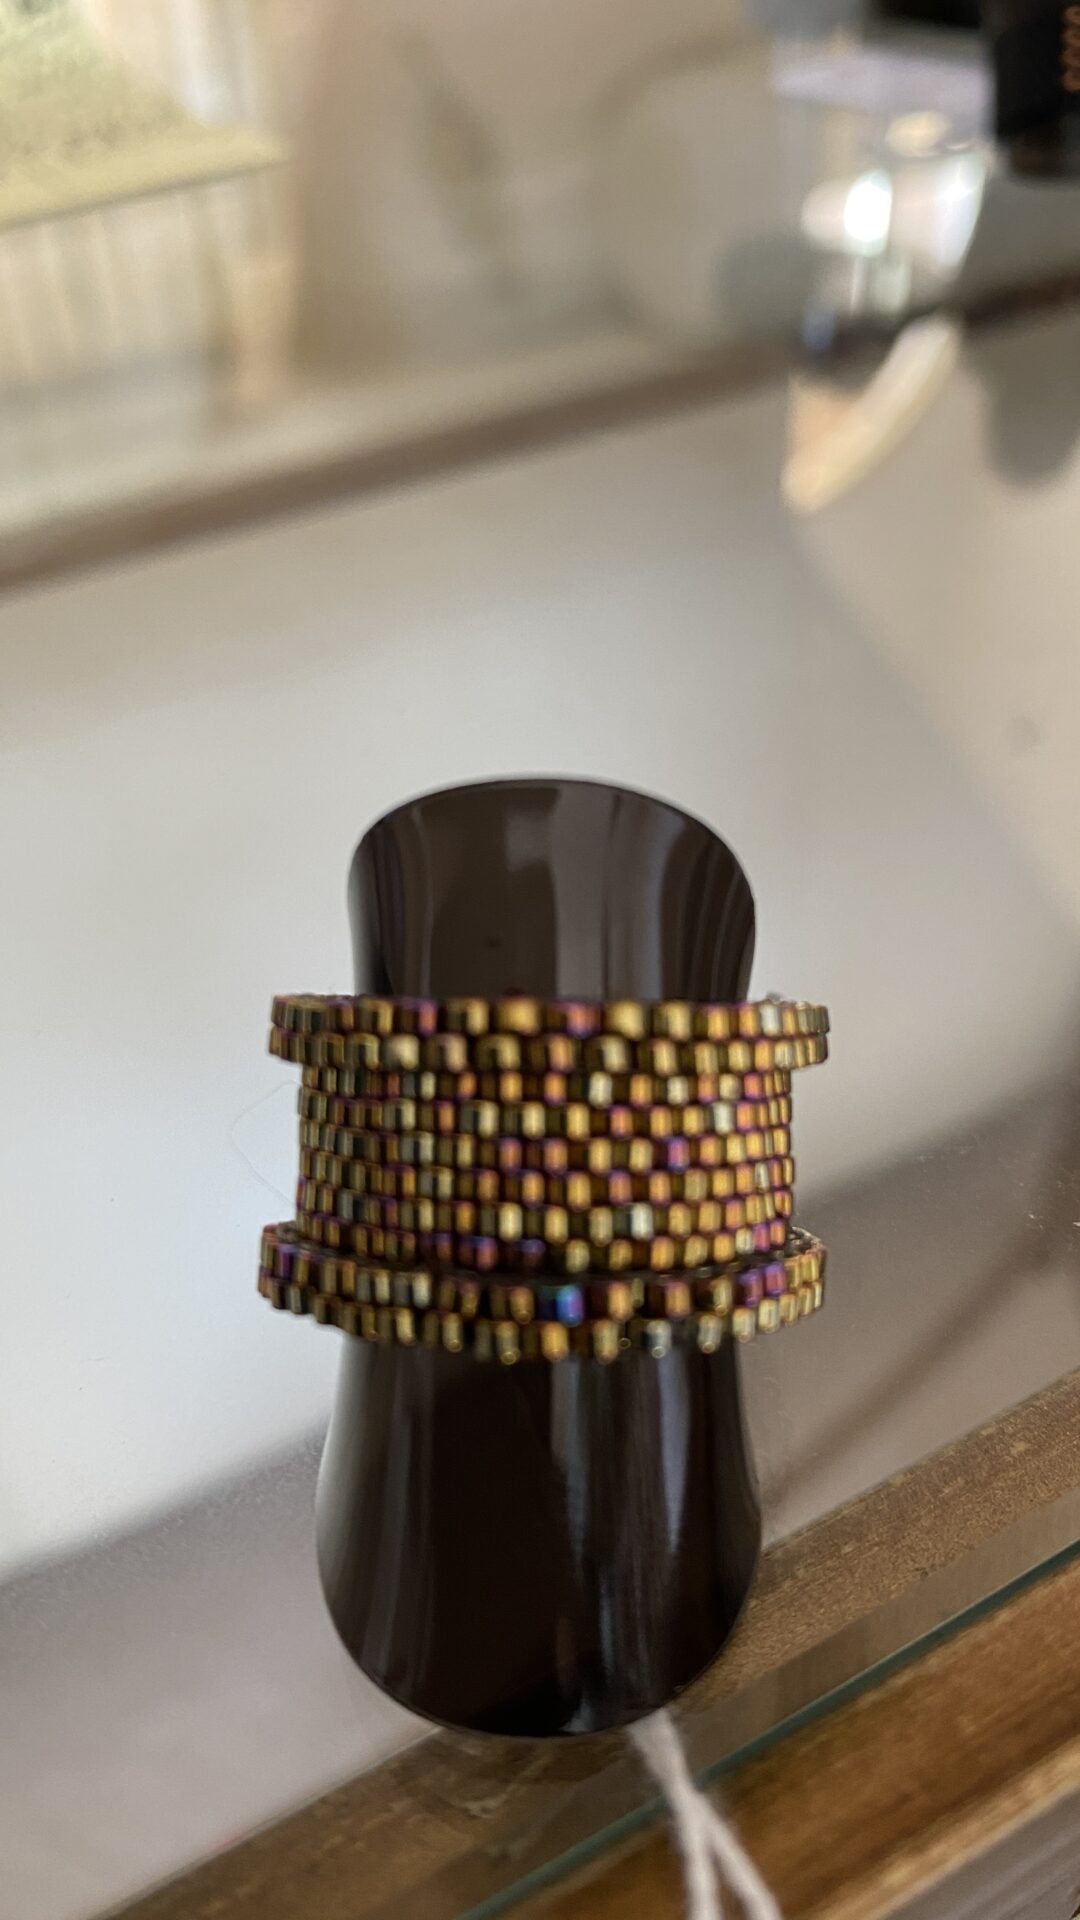 Japanese Seed Bead Handwoven Ring 24k Gold Plated And Palladium In Dark Iris Size US 8 By Covet And Desire